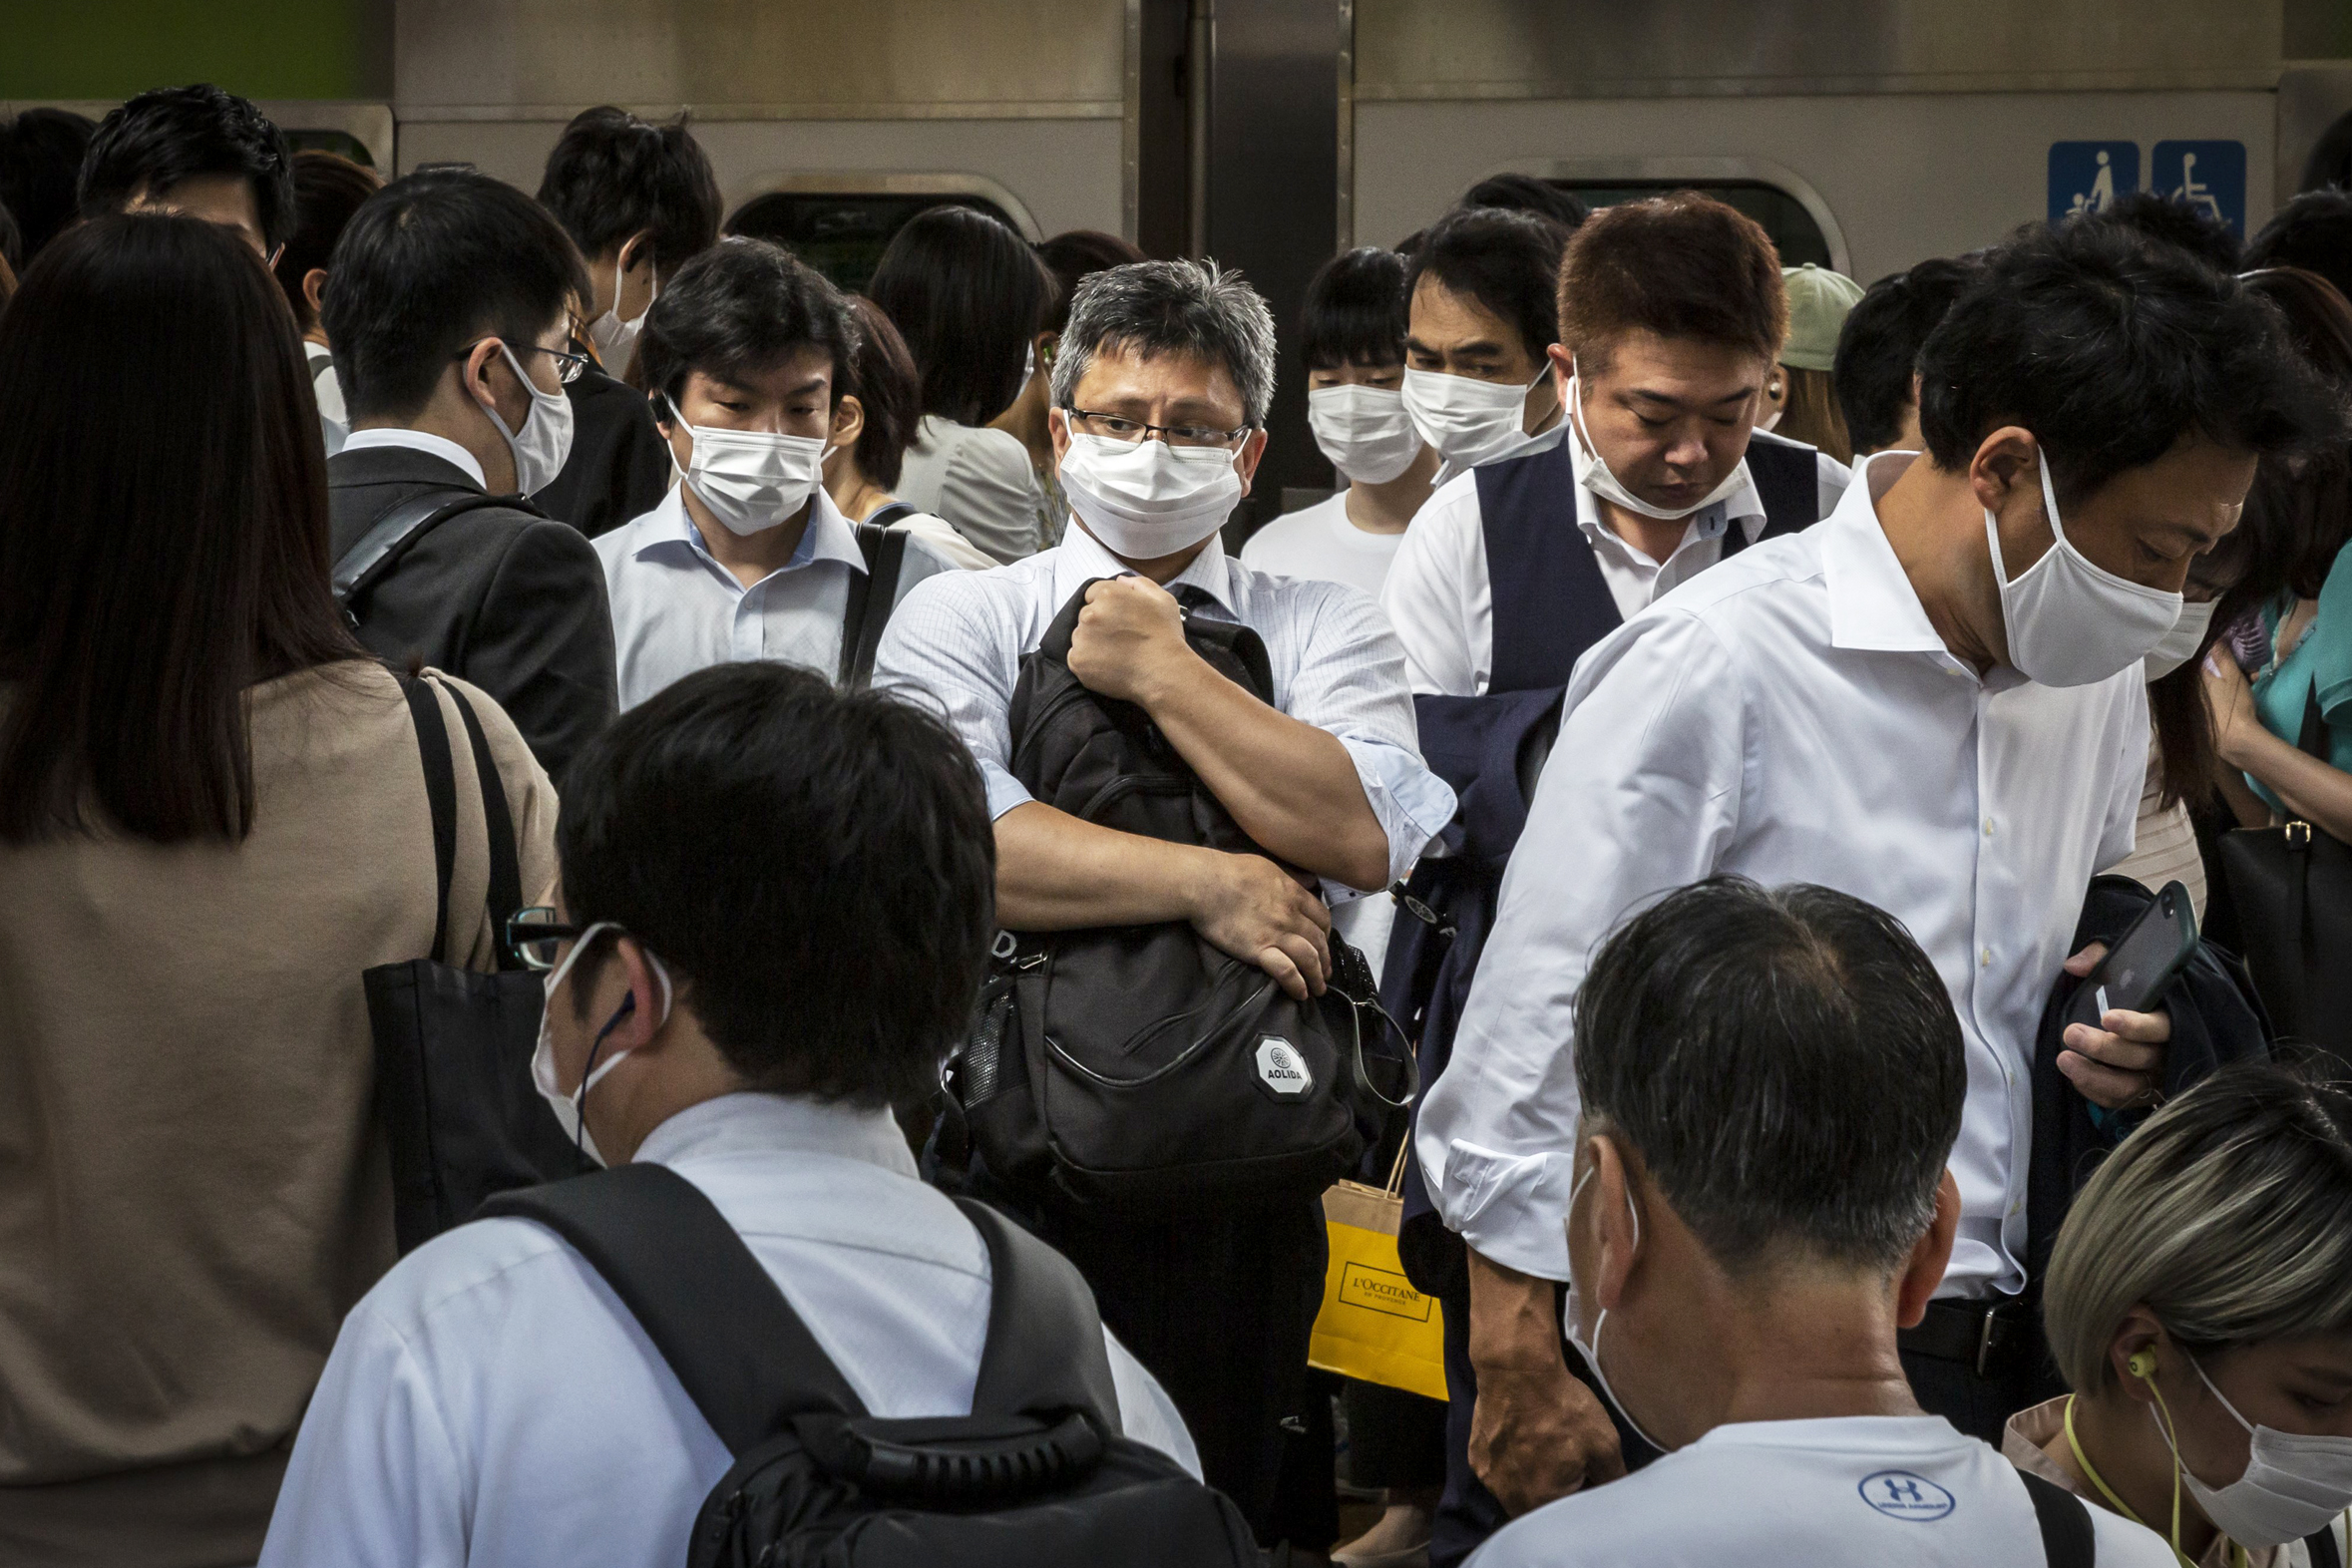 'Severe' Covid-19 cases surge in Tokyo during Olympics